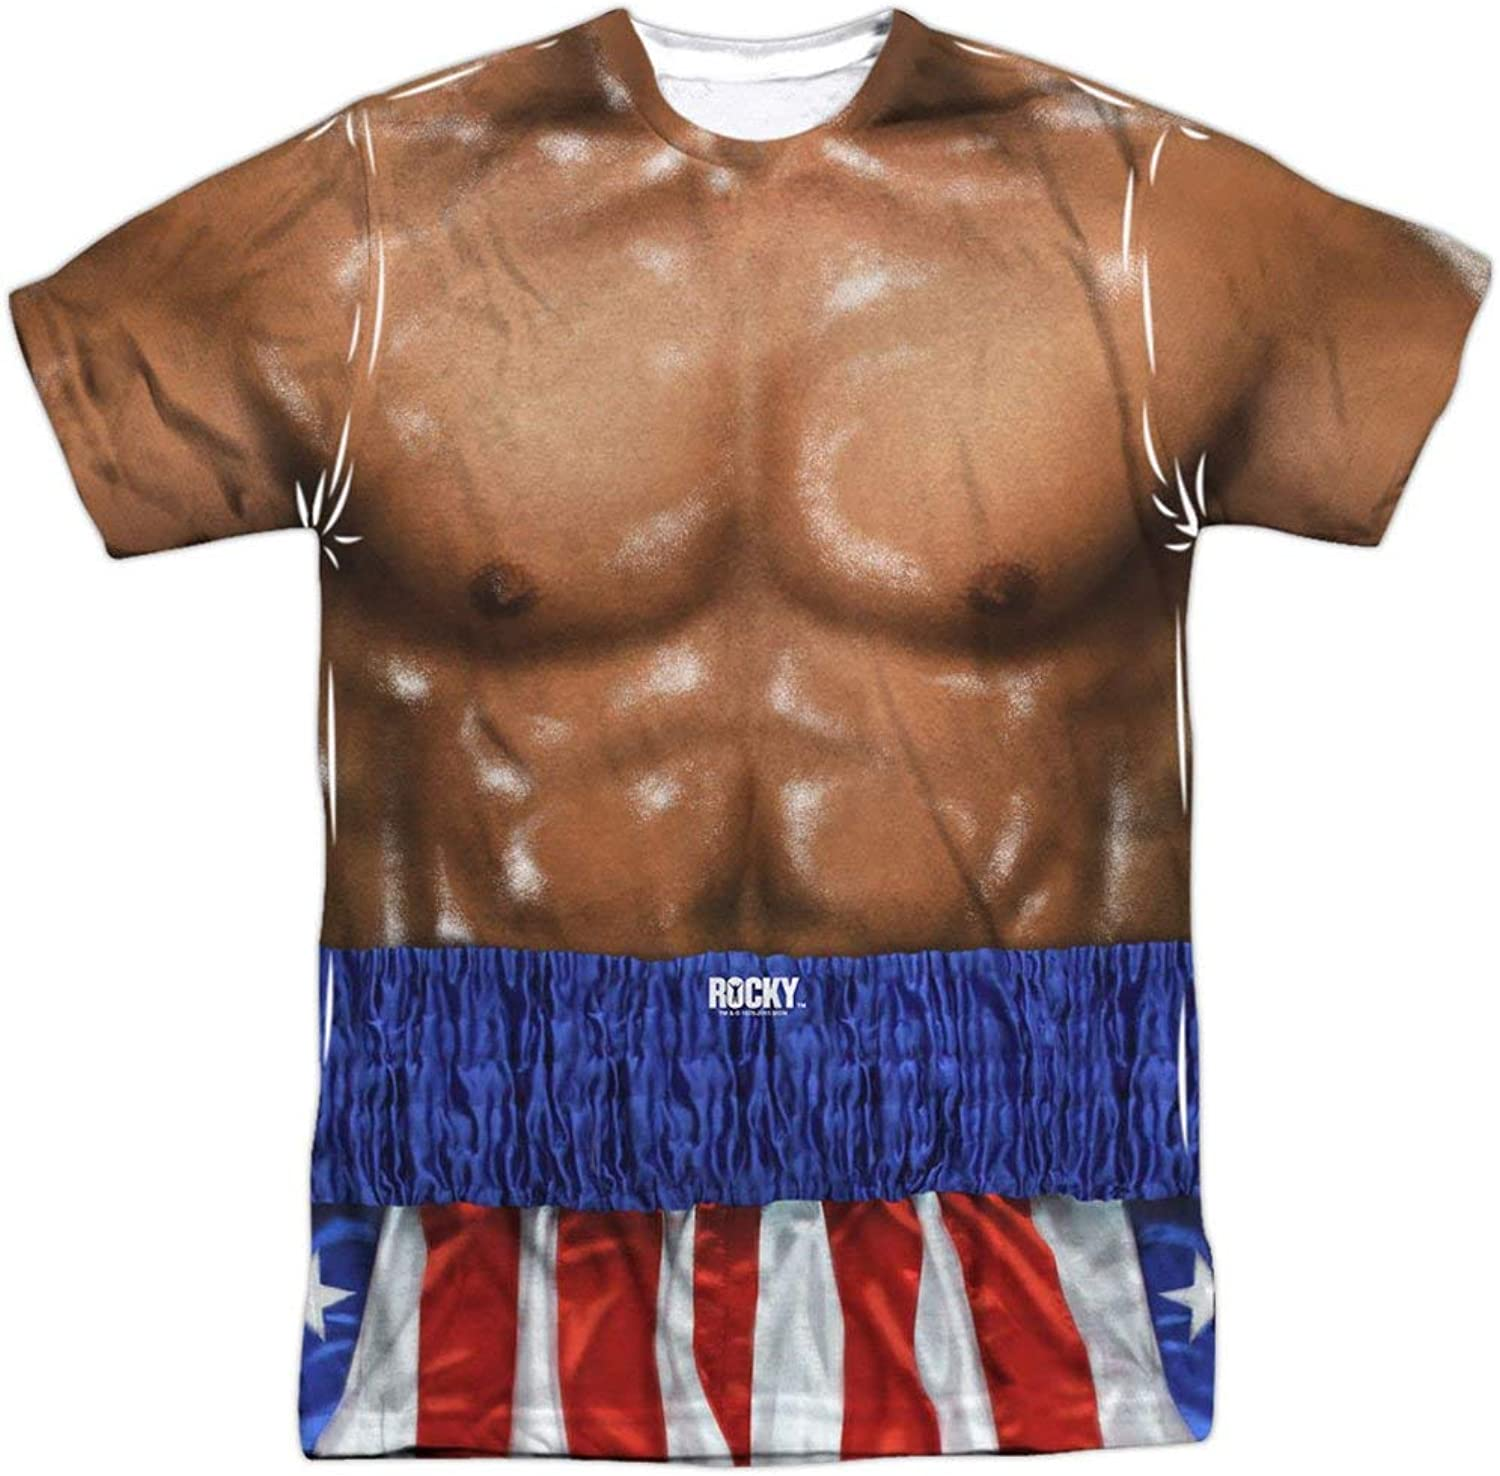 Victory Eletina Rocky Apollo Creed Muscle Torso Costume Front Back Print T-Shirt White